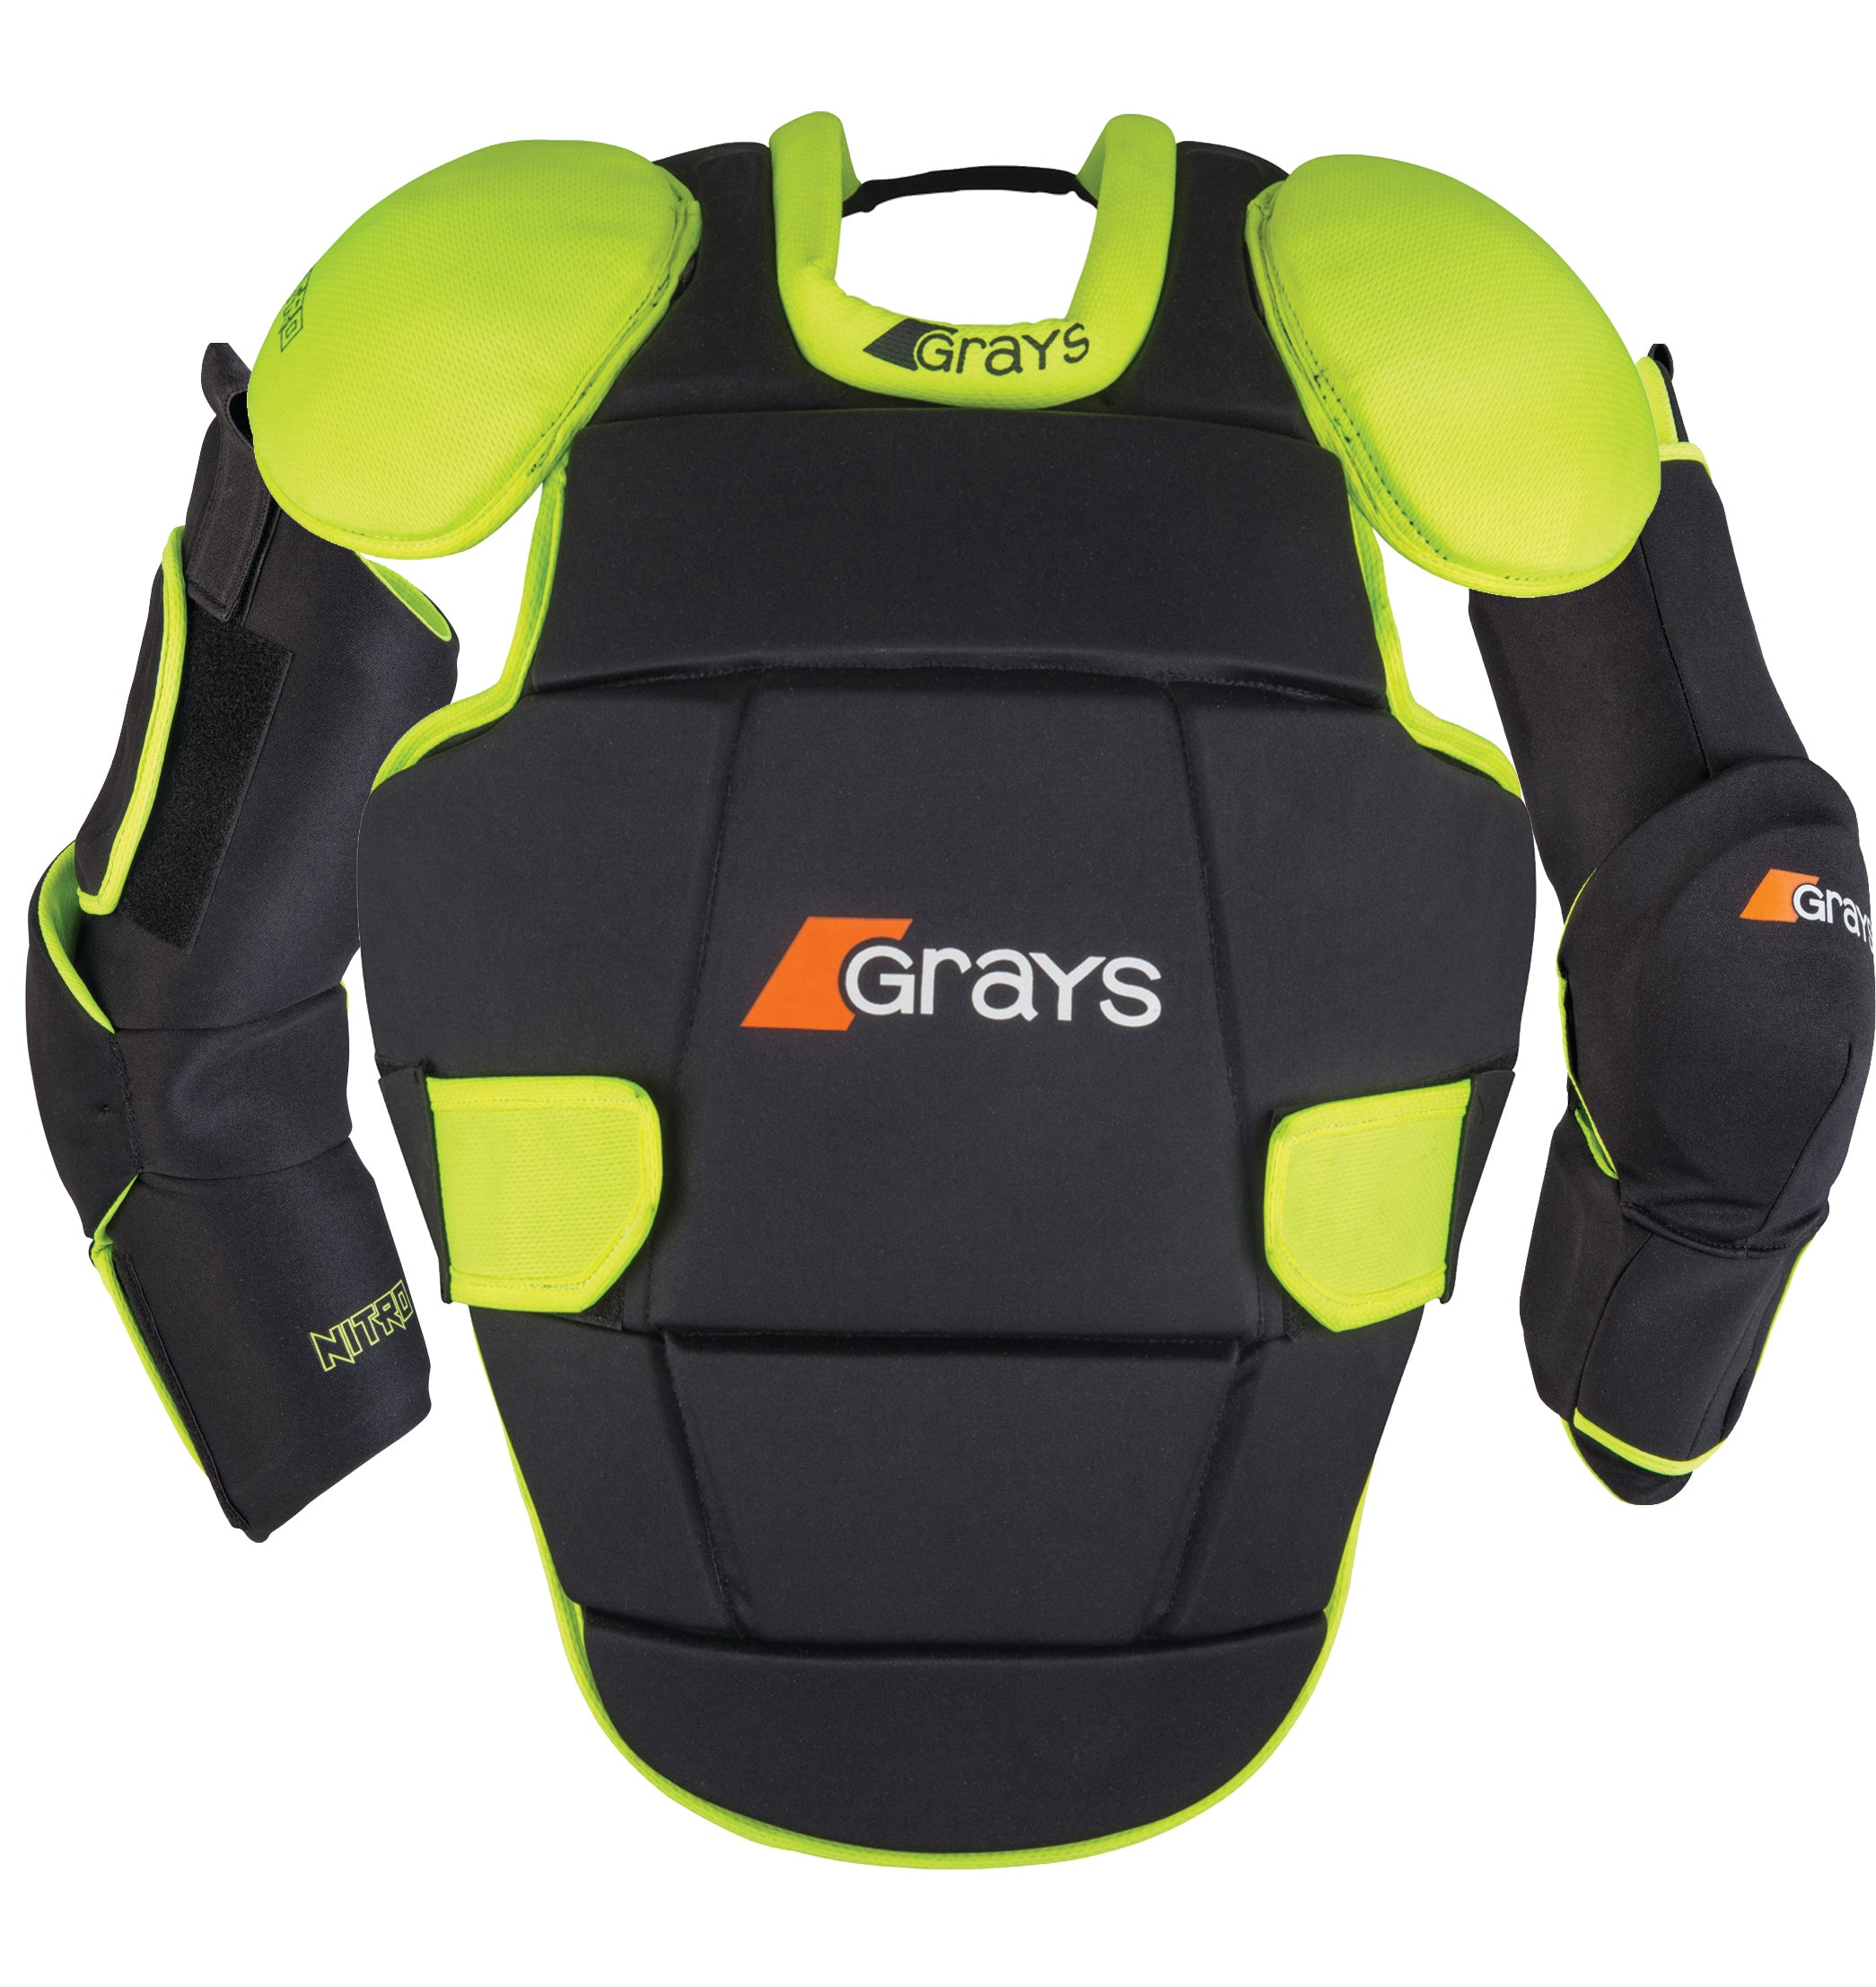 0510e2ecd73 Grays Nitro Field Hockey Body Armour – AKPRO Canada